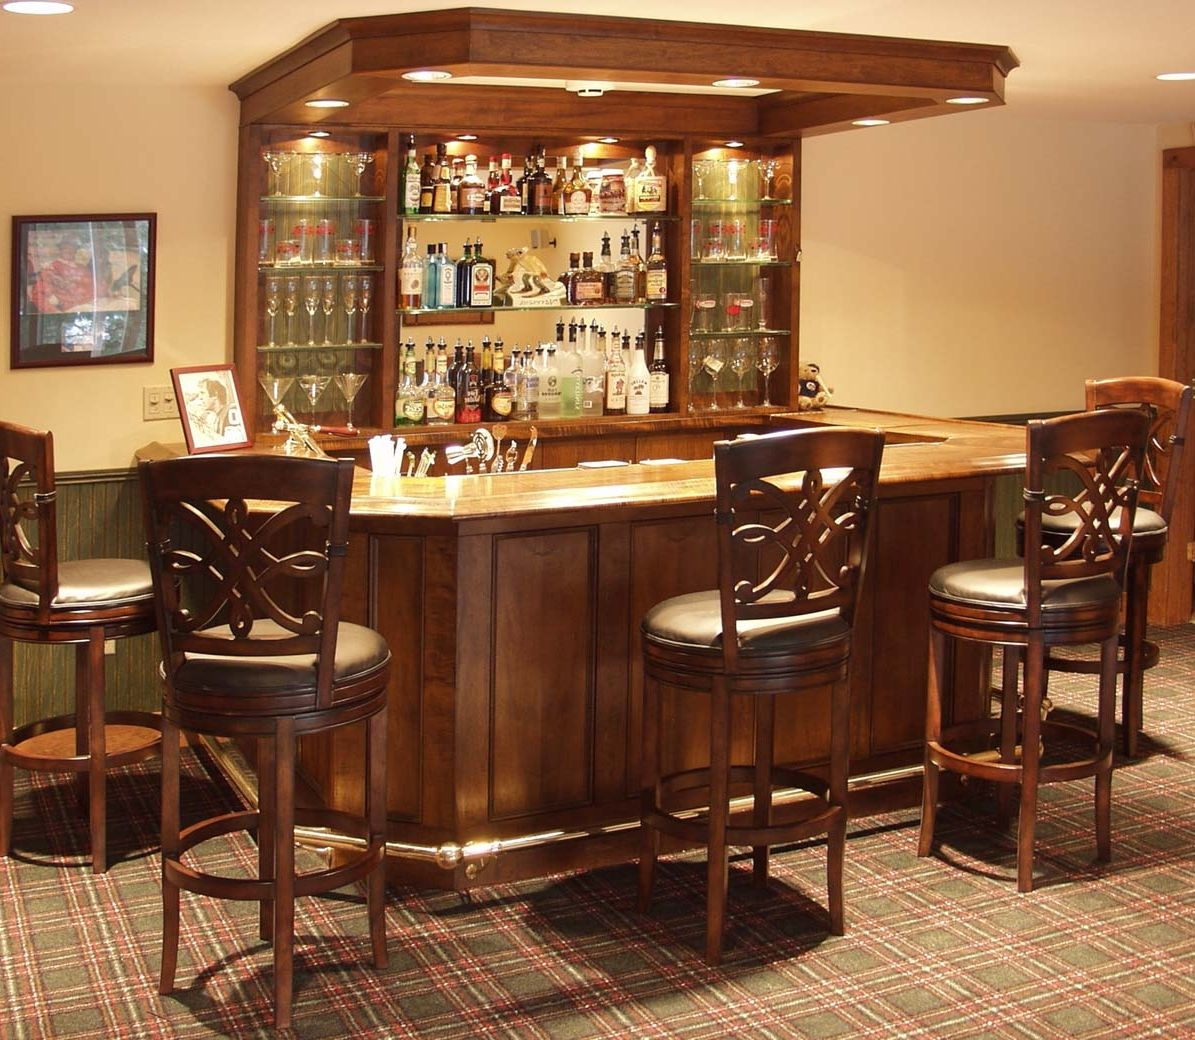 Lounge Home Ideas: 35 Best Home Bar Design Ideas